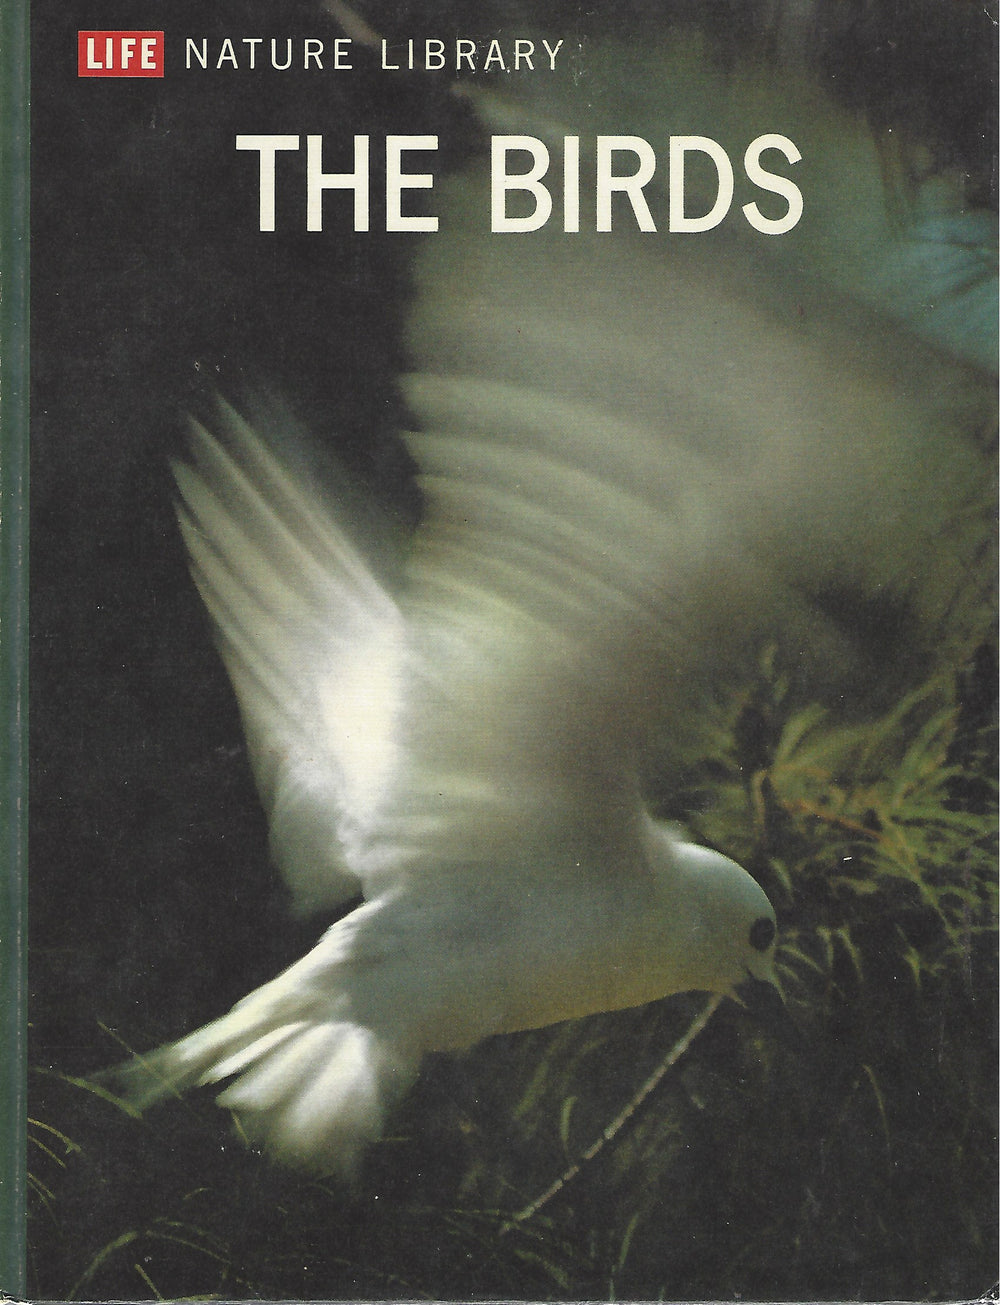 TIME LIFE: Nature Library; The Birds by Roger Tory Peterson (1968)